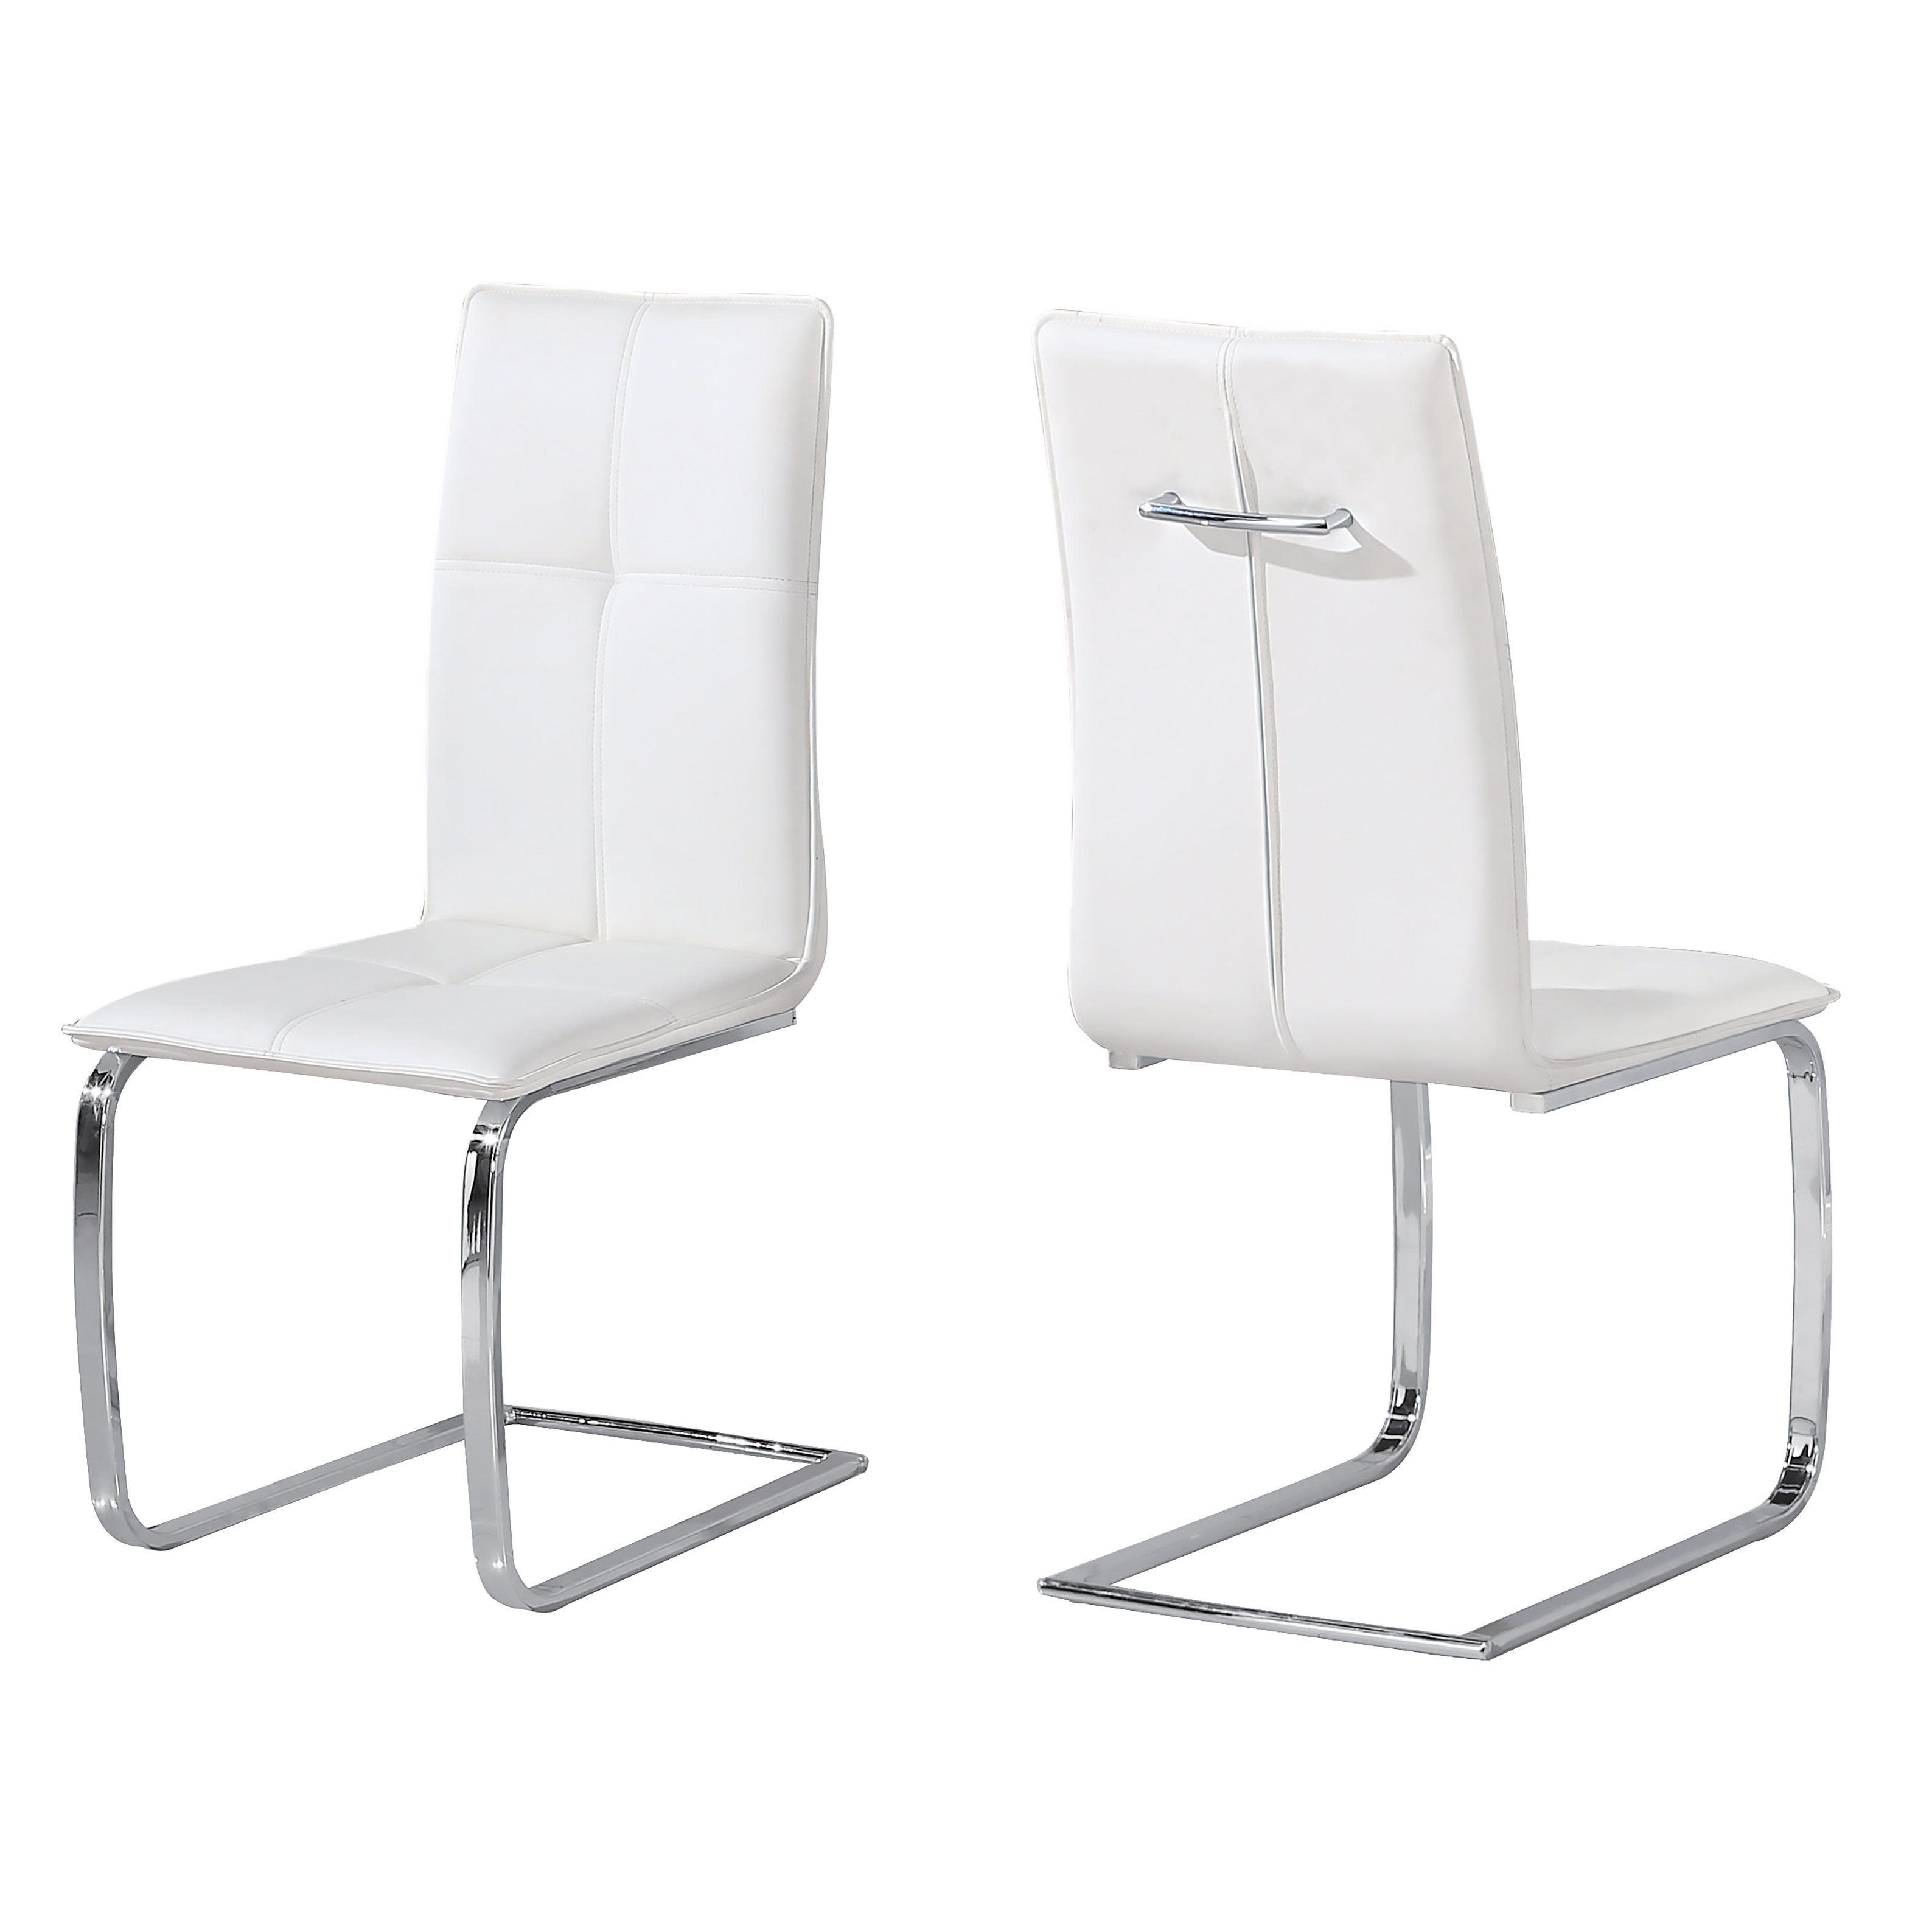 Opus Chair White (Pack of 2)